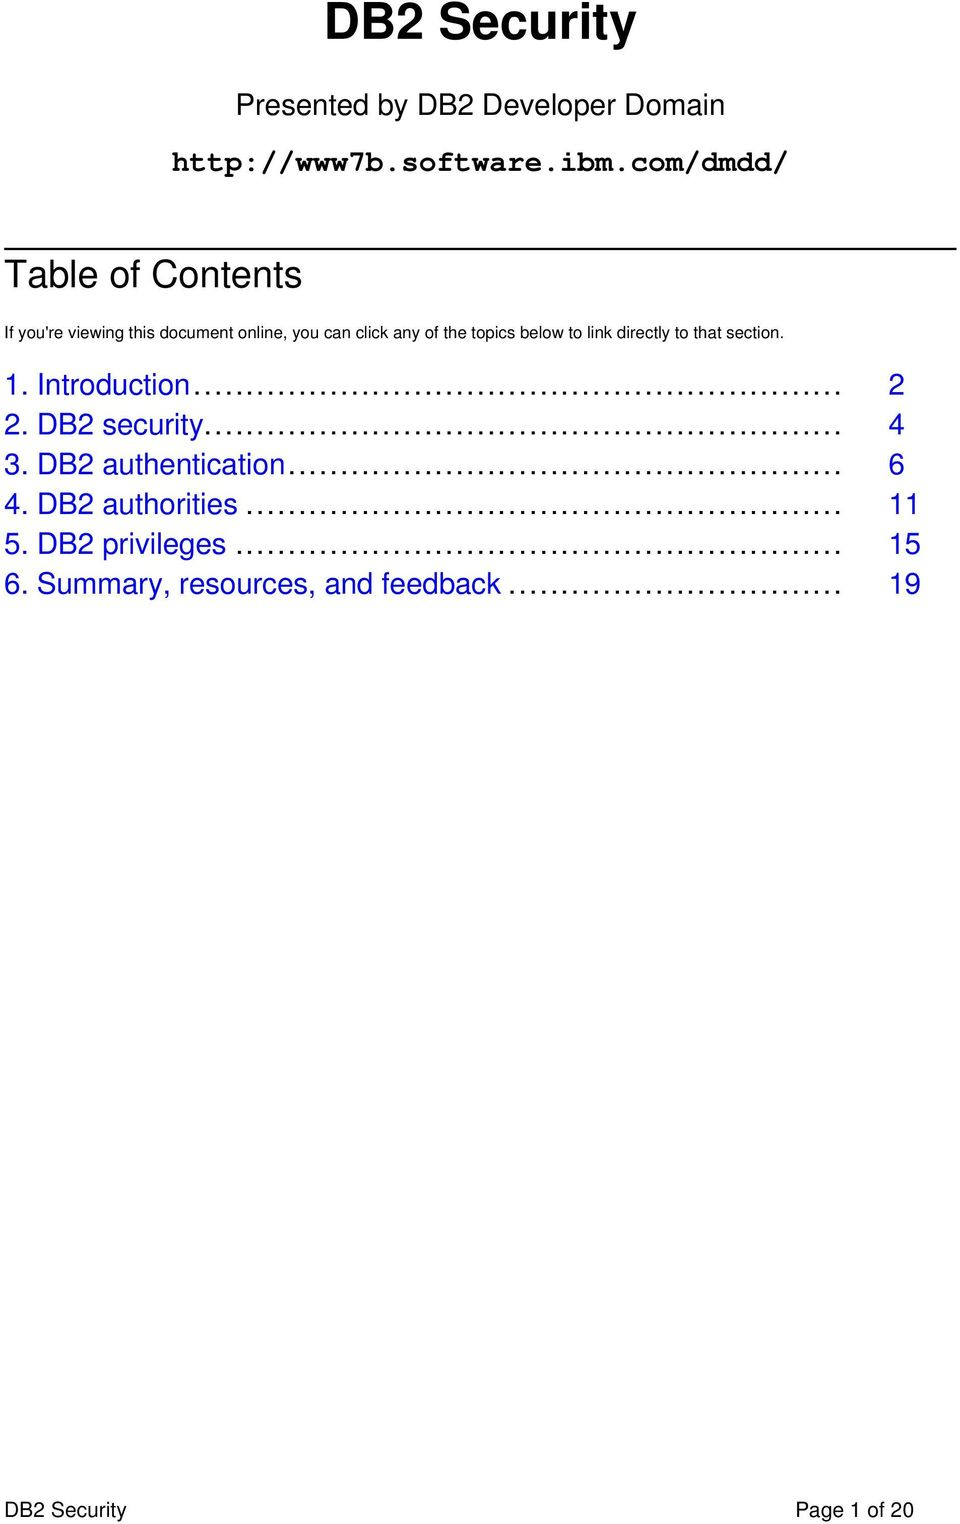 the topics below to link directly to that section. 1. Introduction... 2 2. DB2 security.